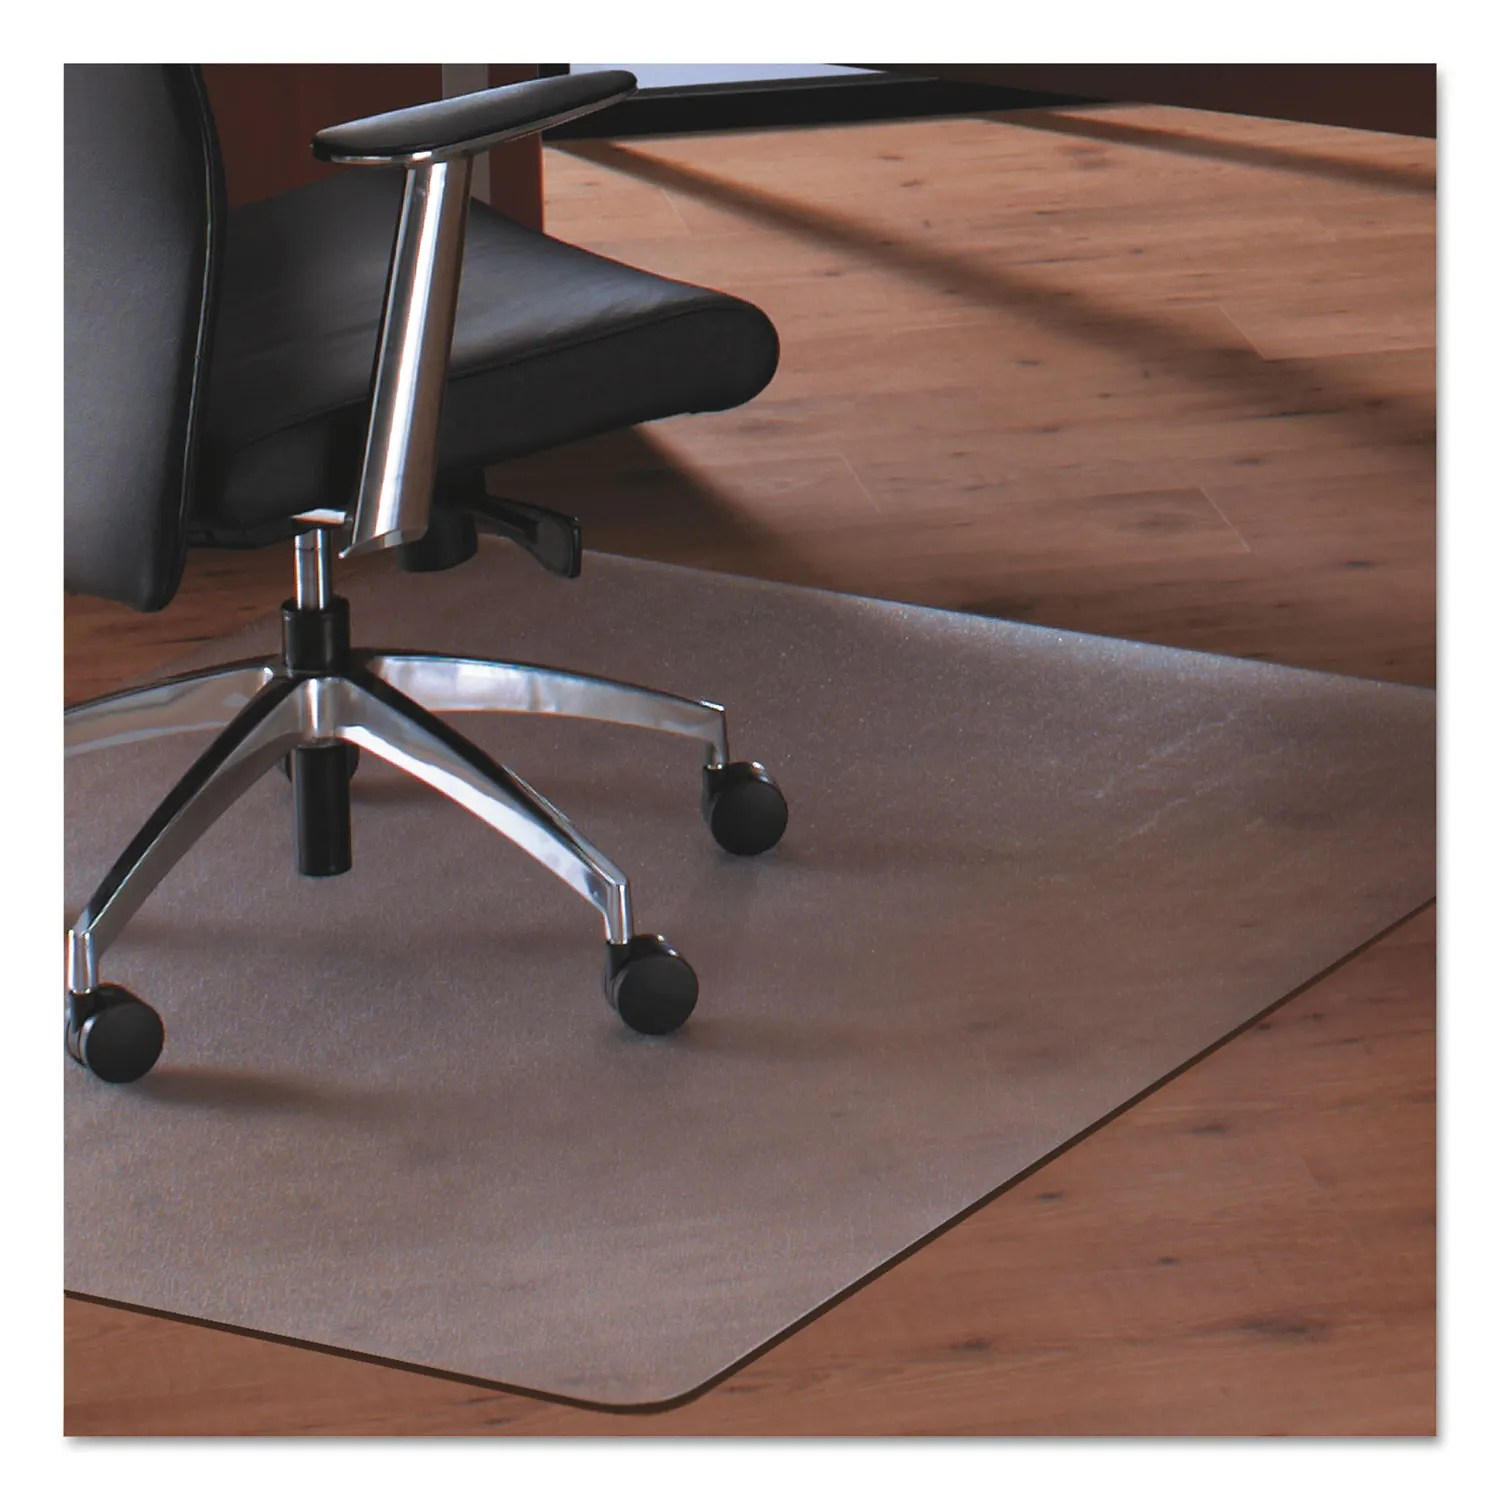 Big W Floor Mat Cleartex Megamat Heavy Duty Polycarbonate Mat For Hard Floor All Carpet 46 X 53